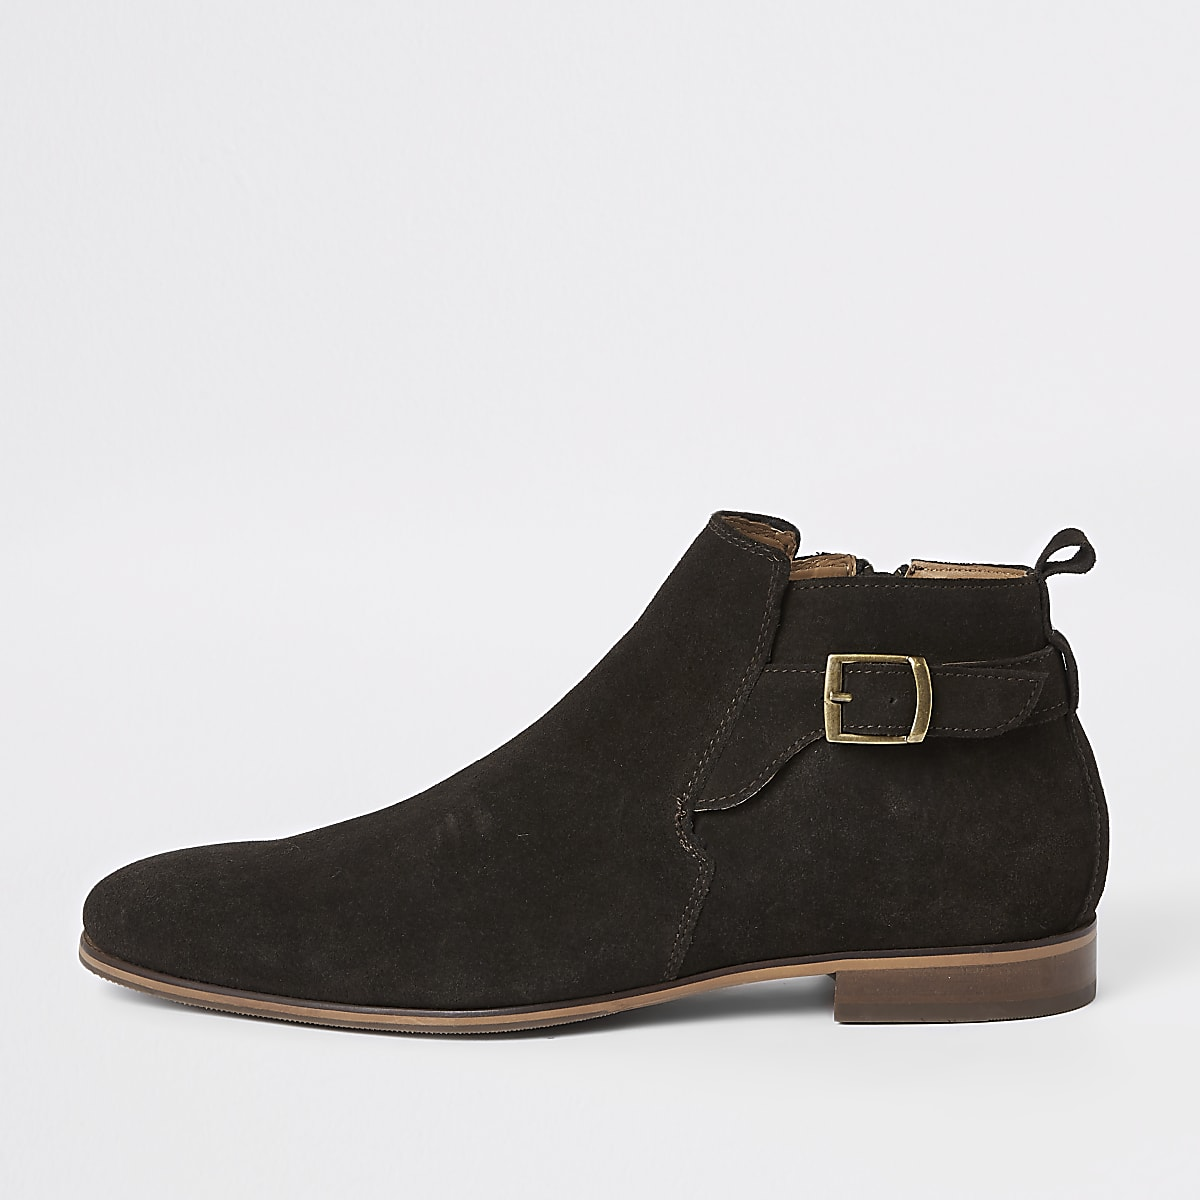 Bottines Chelsea en daim marron à boucle